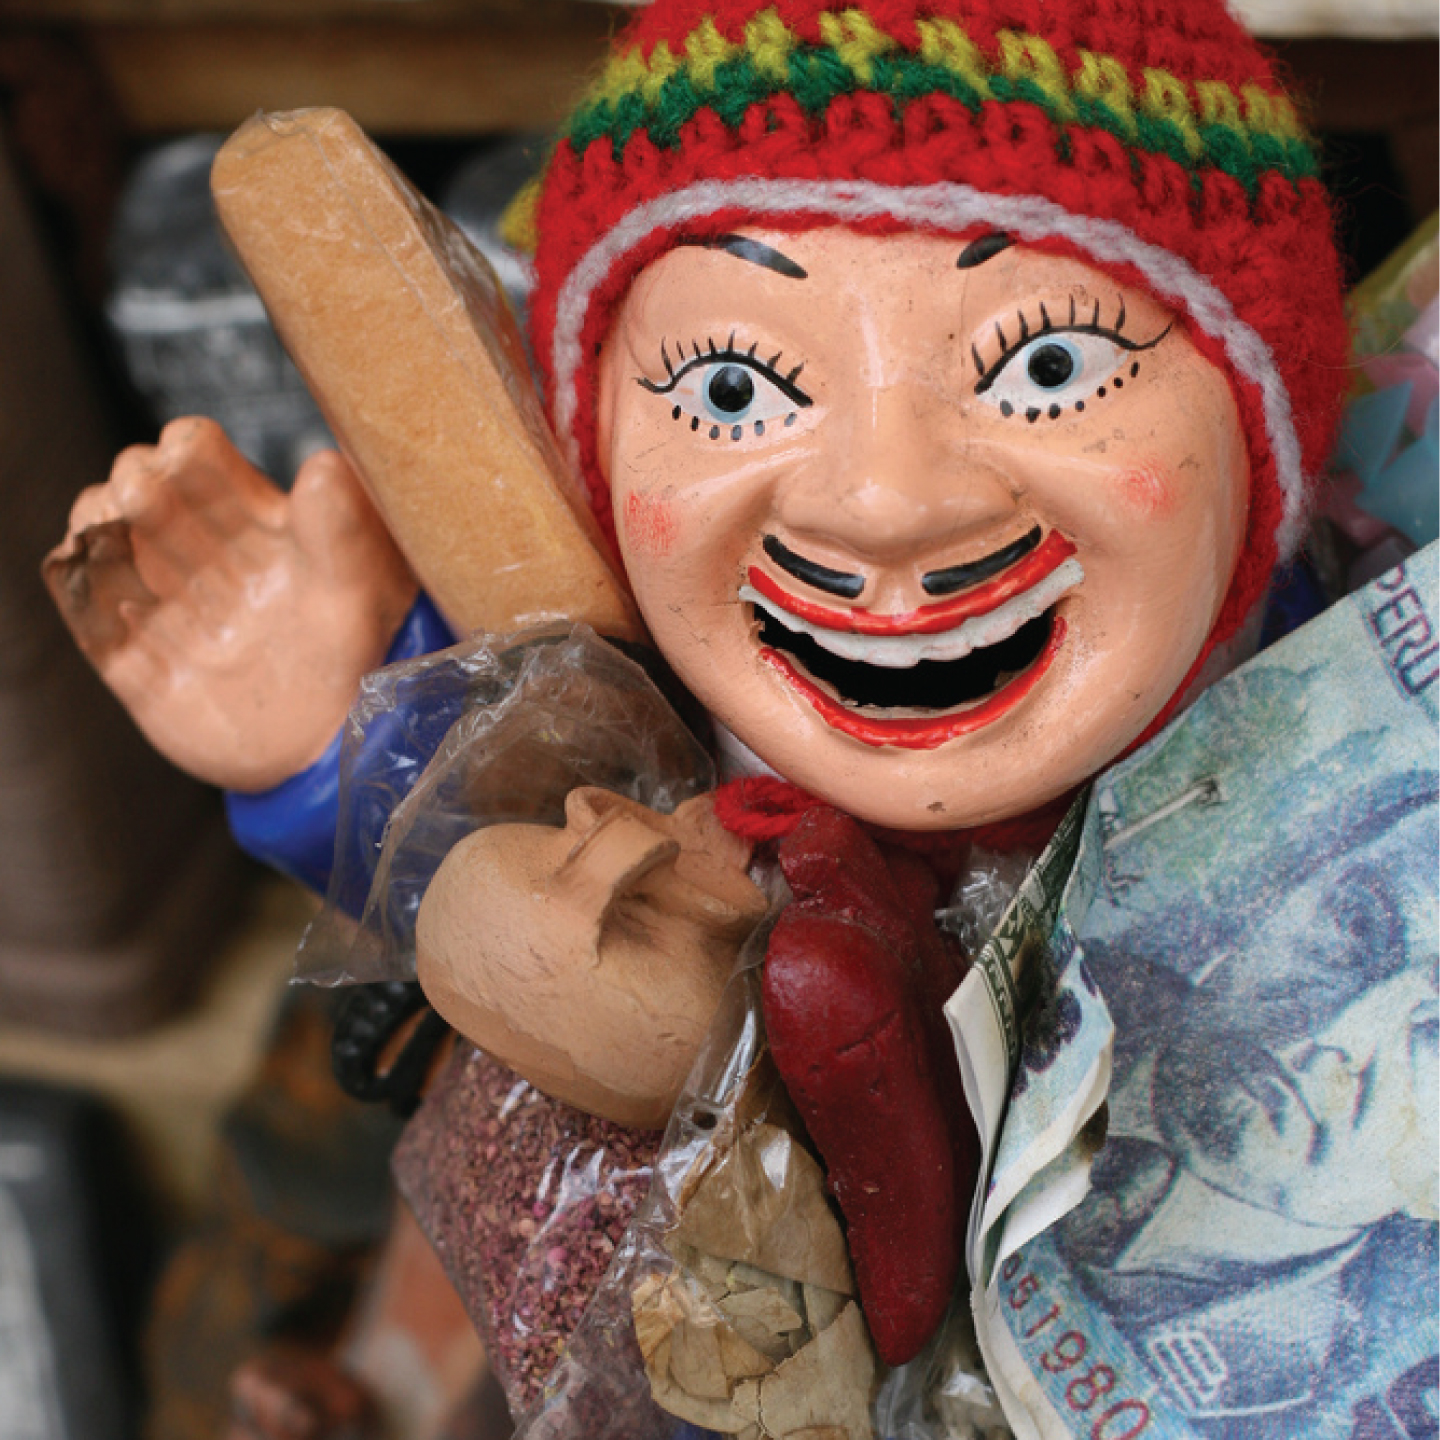 bolivian good luck charm (for financial success!)